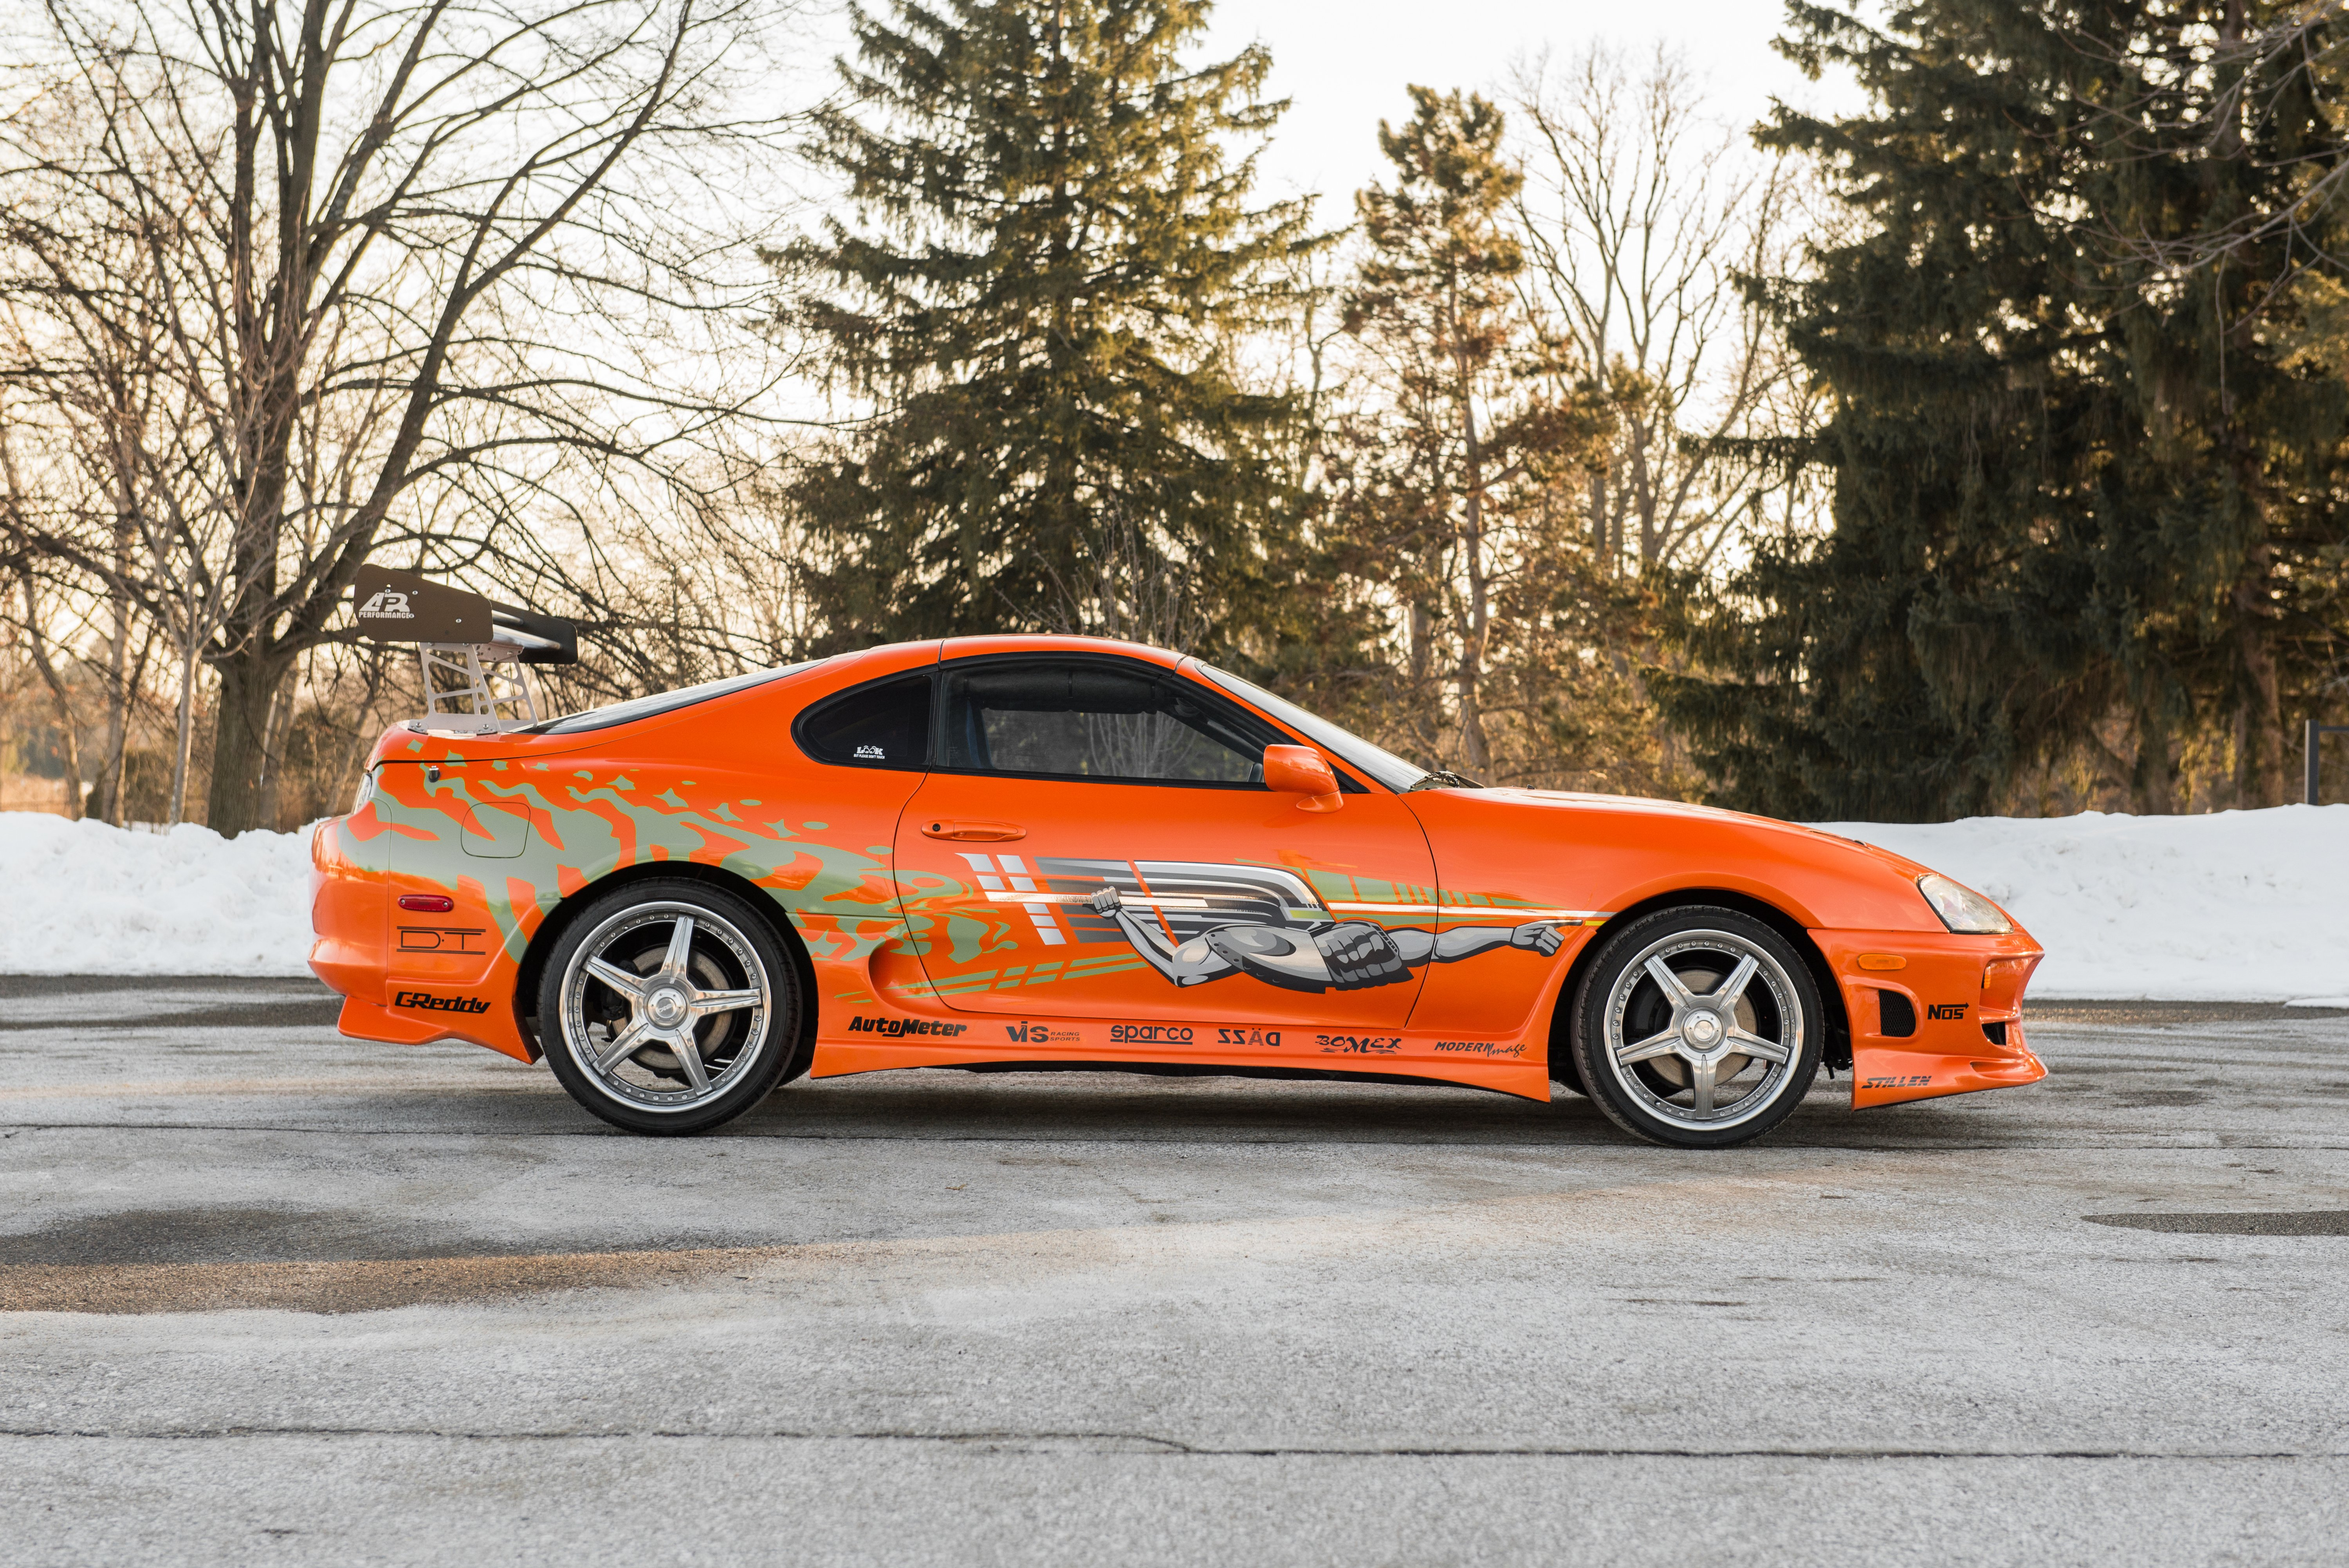 Toyota Supra The Fast and the Furious - 3897.2KB